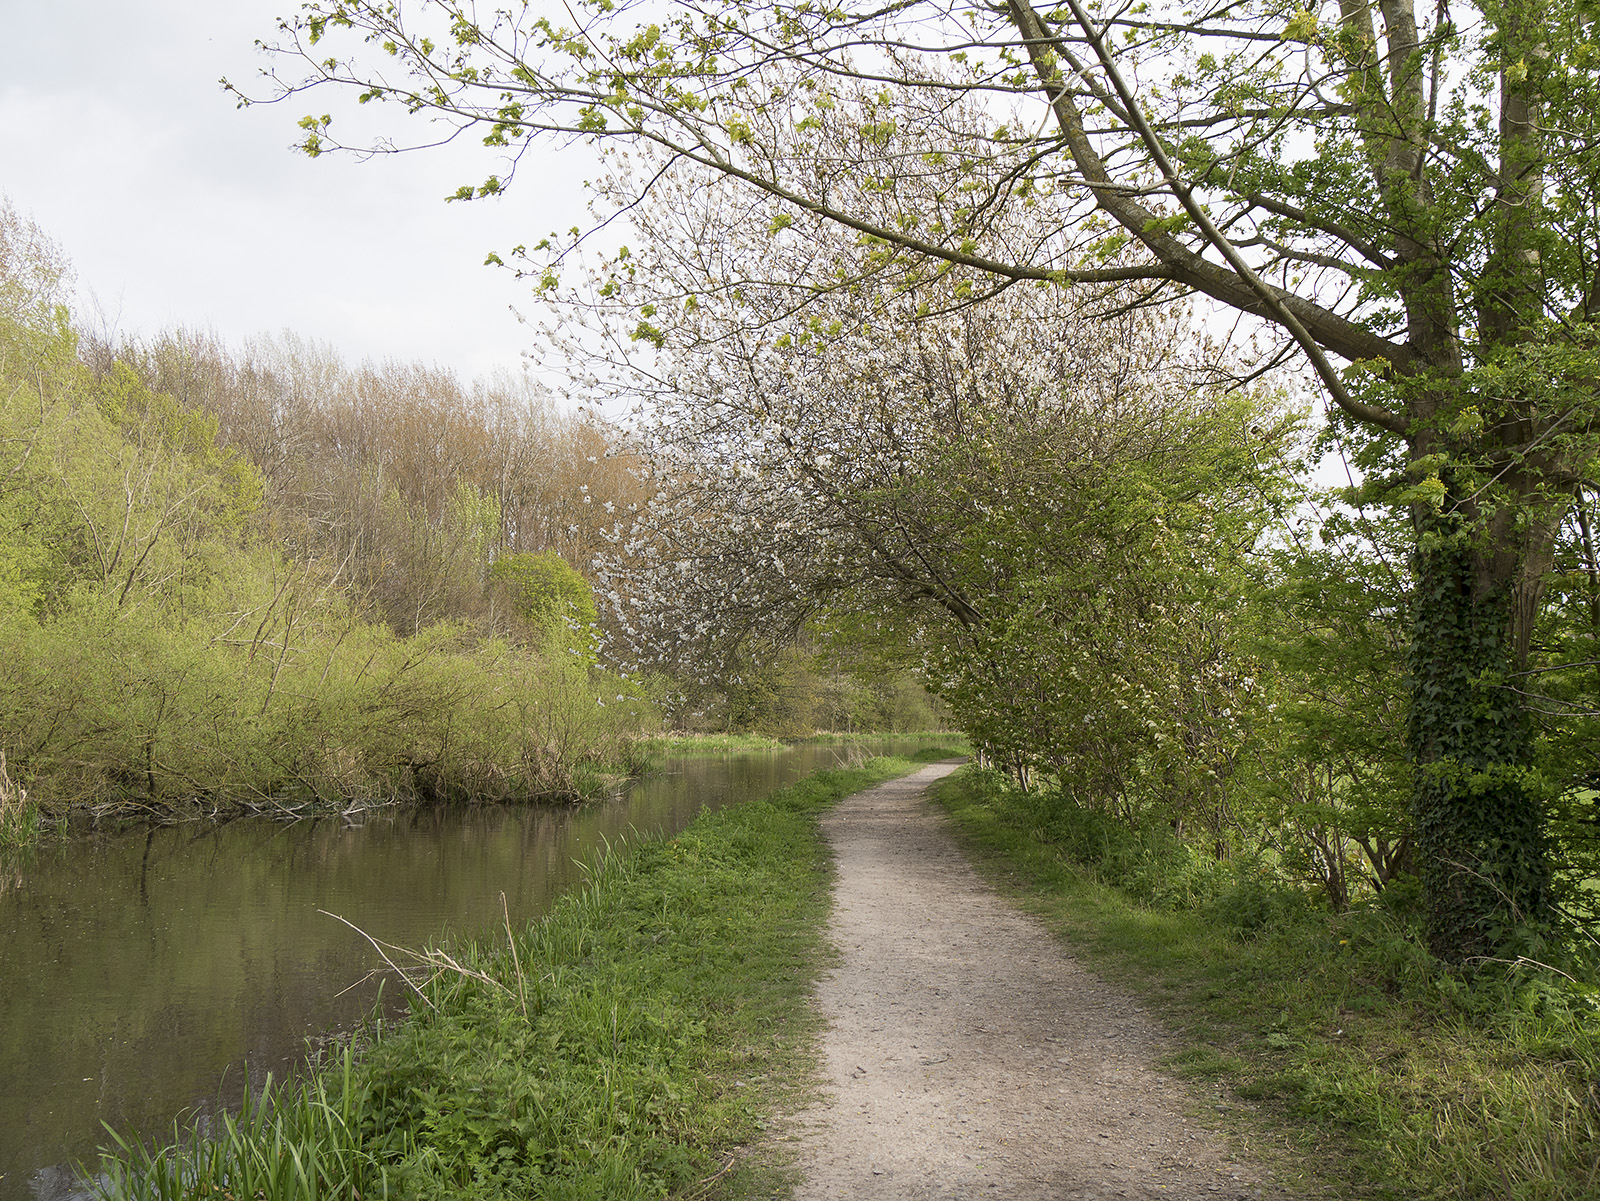 Tree blossom overhangs the canal path after Perch bridge